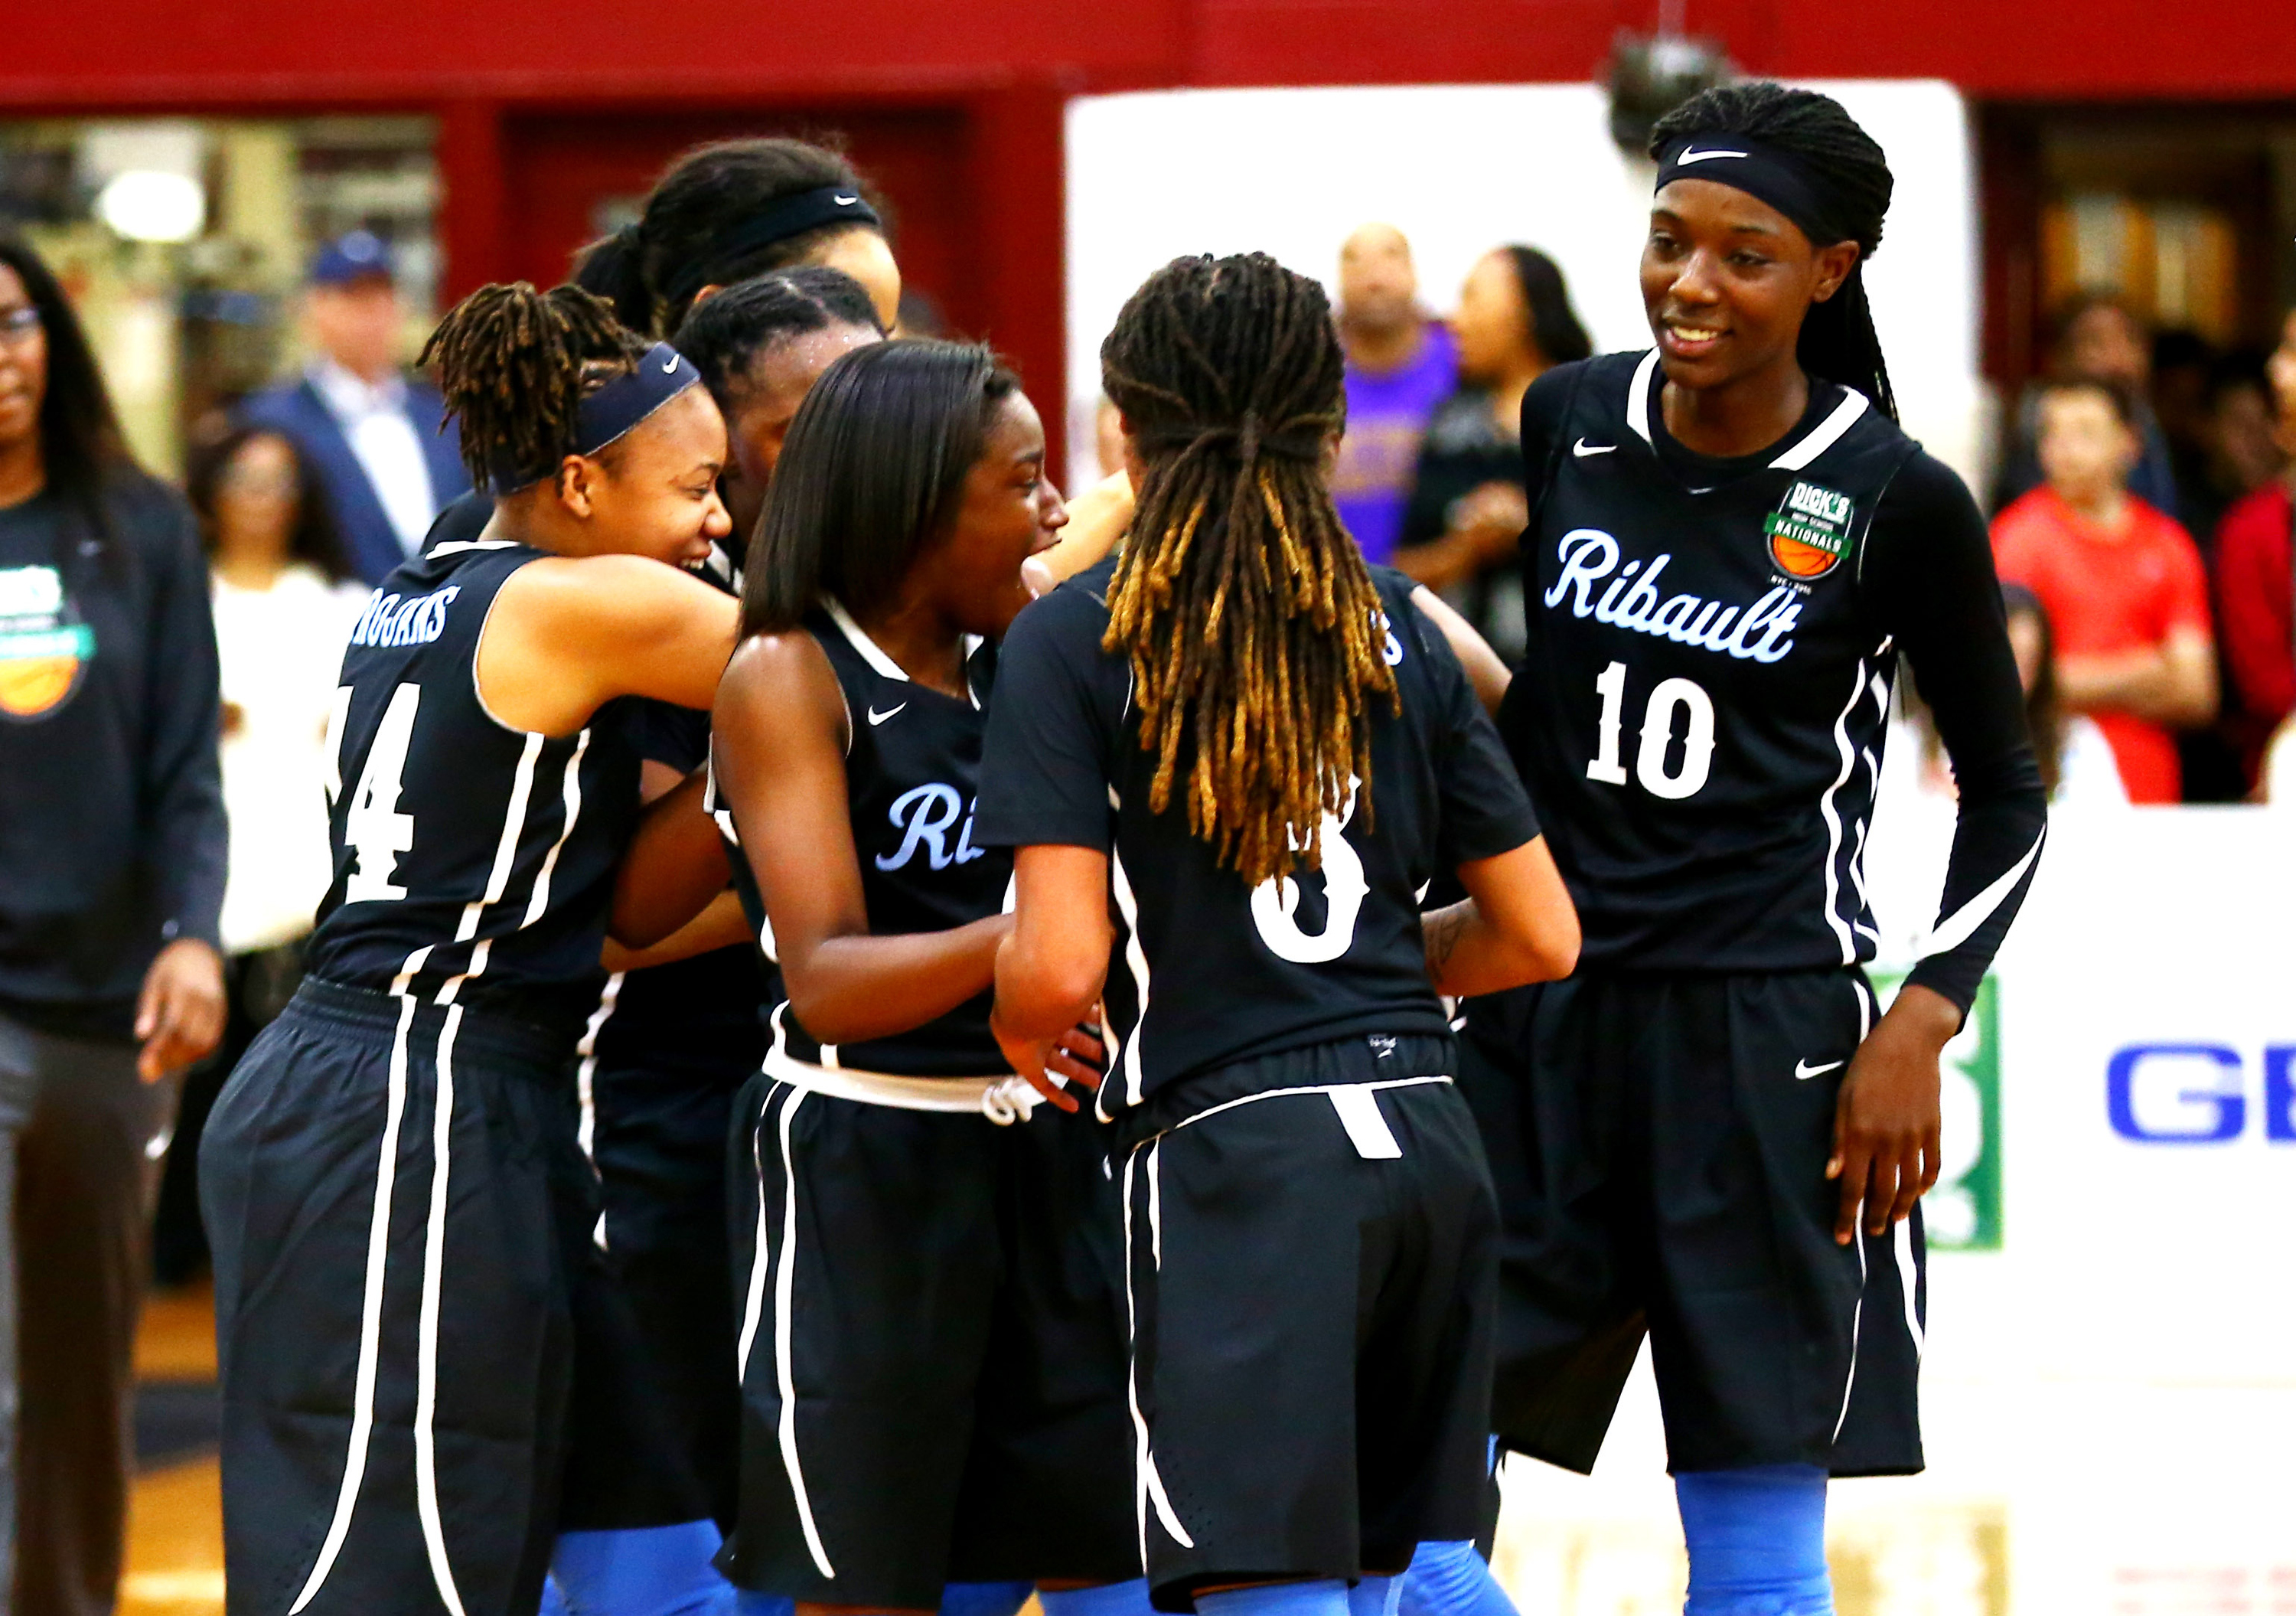 Ribault celebrates after defeating Seton Catholic 49-41 in the DICK'S Nationals semifinals (Photo: Andy Marlin, USA TODAY Sports)